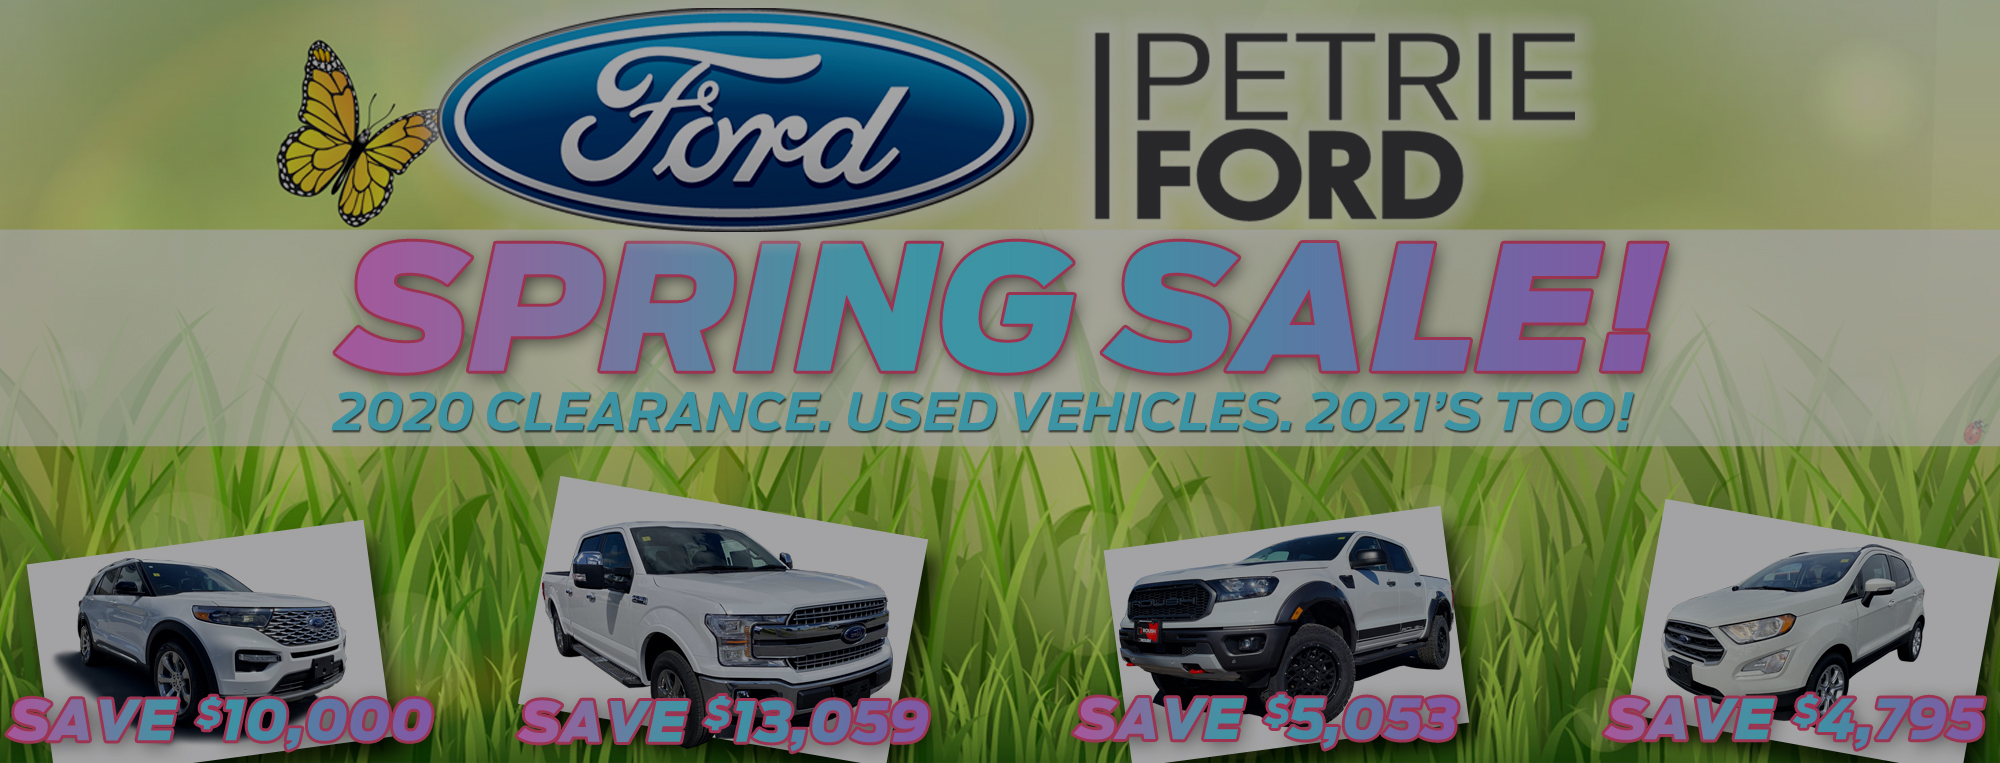 Petrie Ford Monthly Promotions